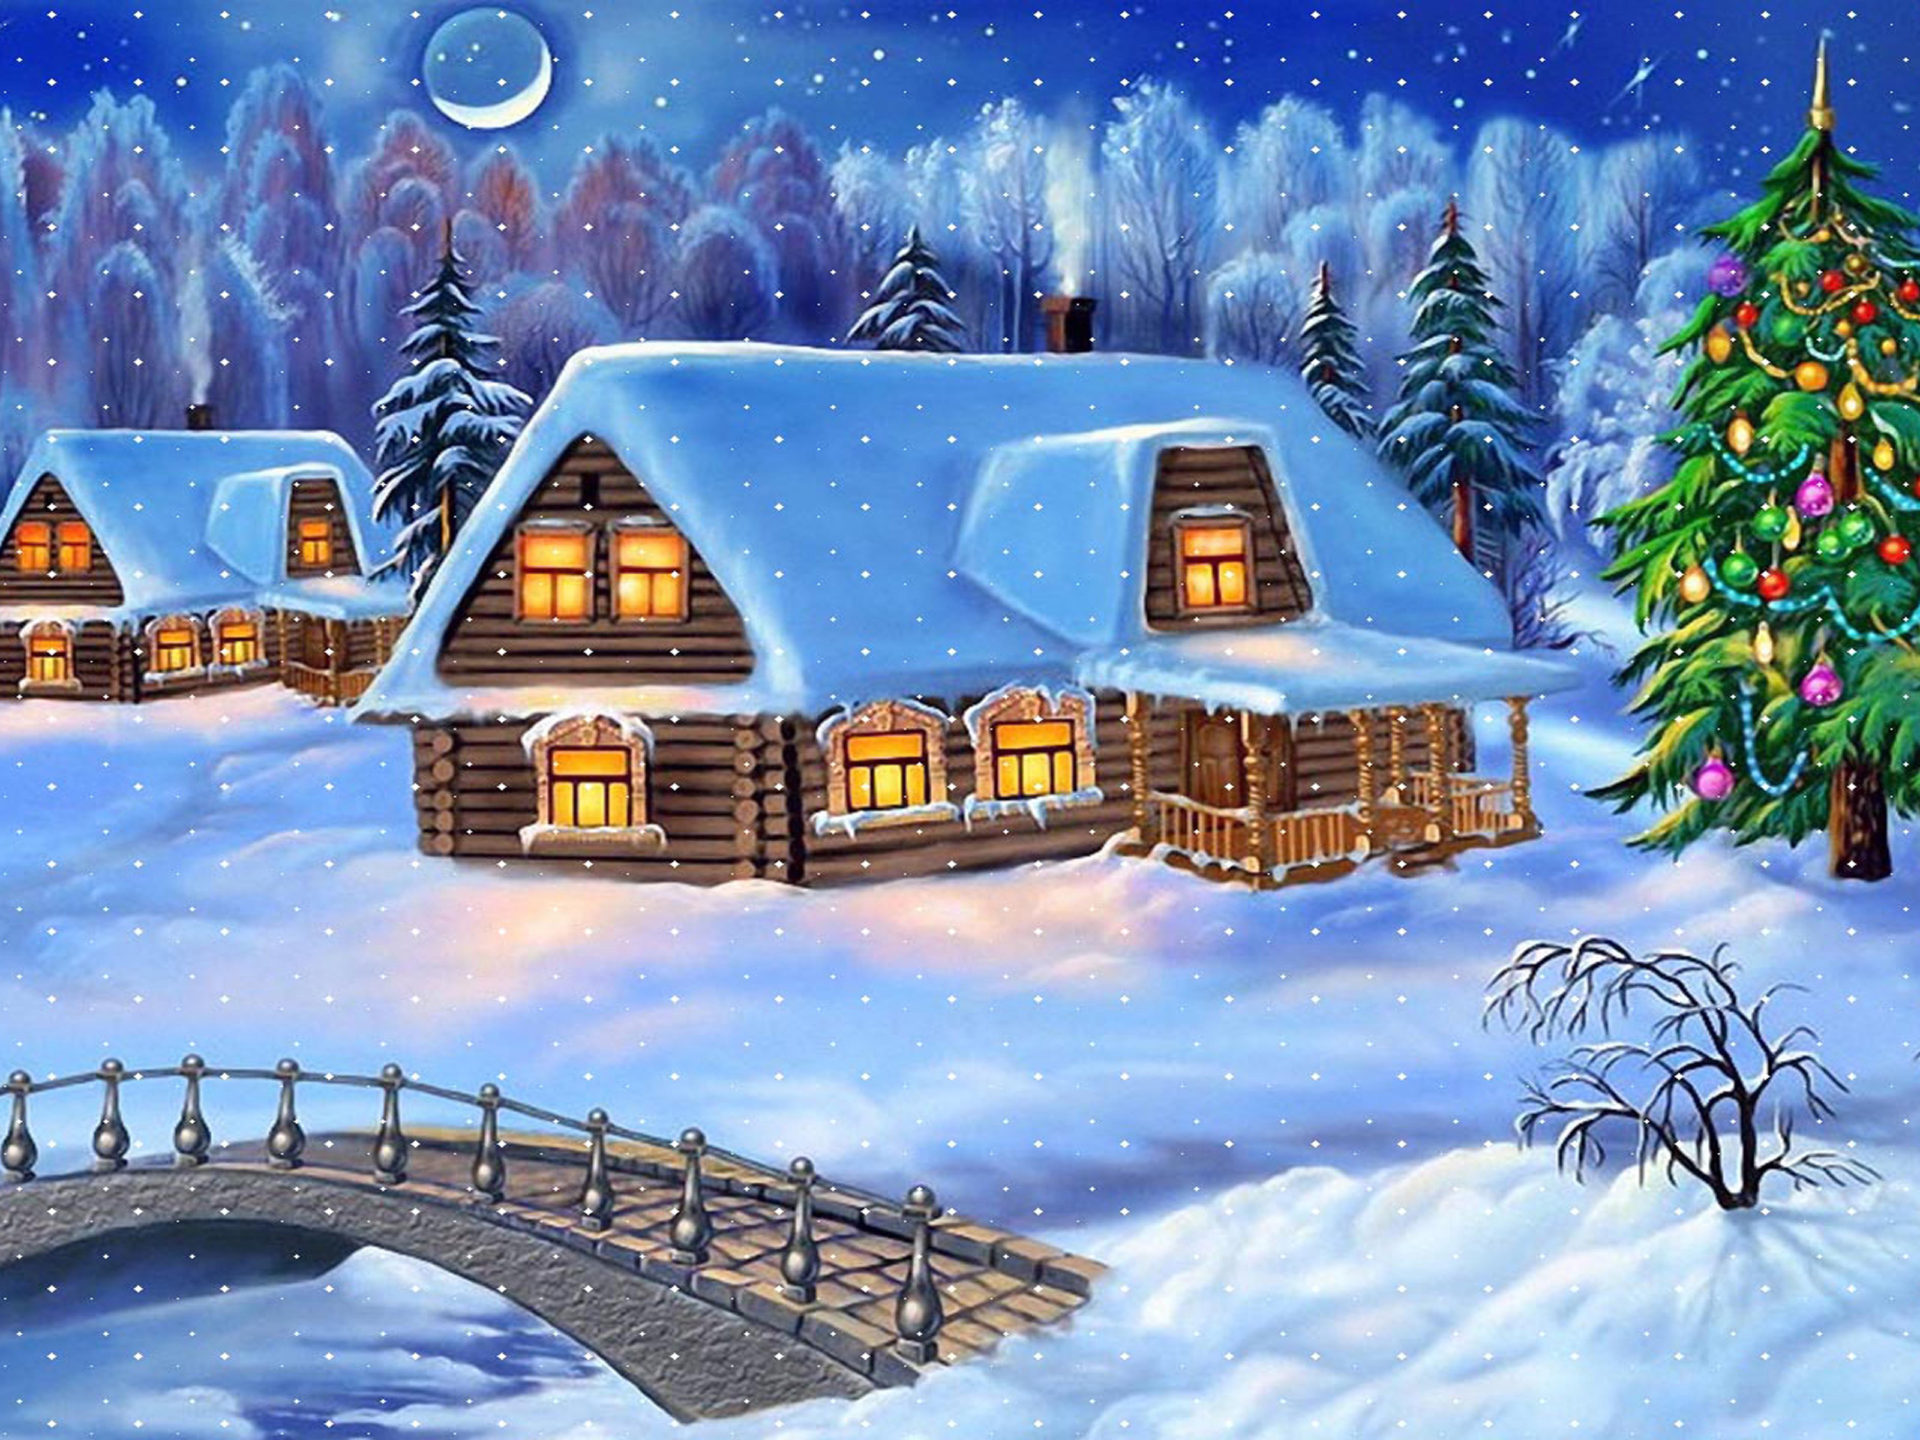 Iphone X Live Wallpaper Download For Android Happy New Year Christmas Tree Winter Village Houses Wooden